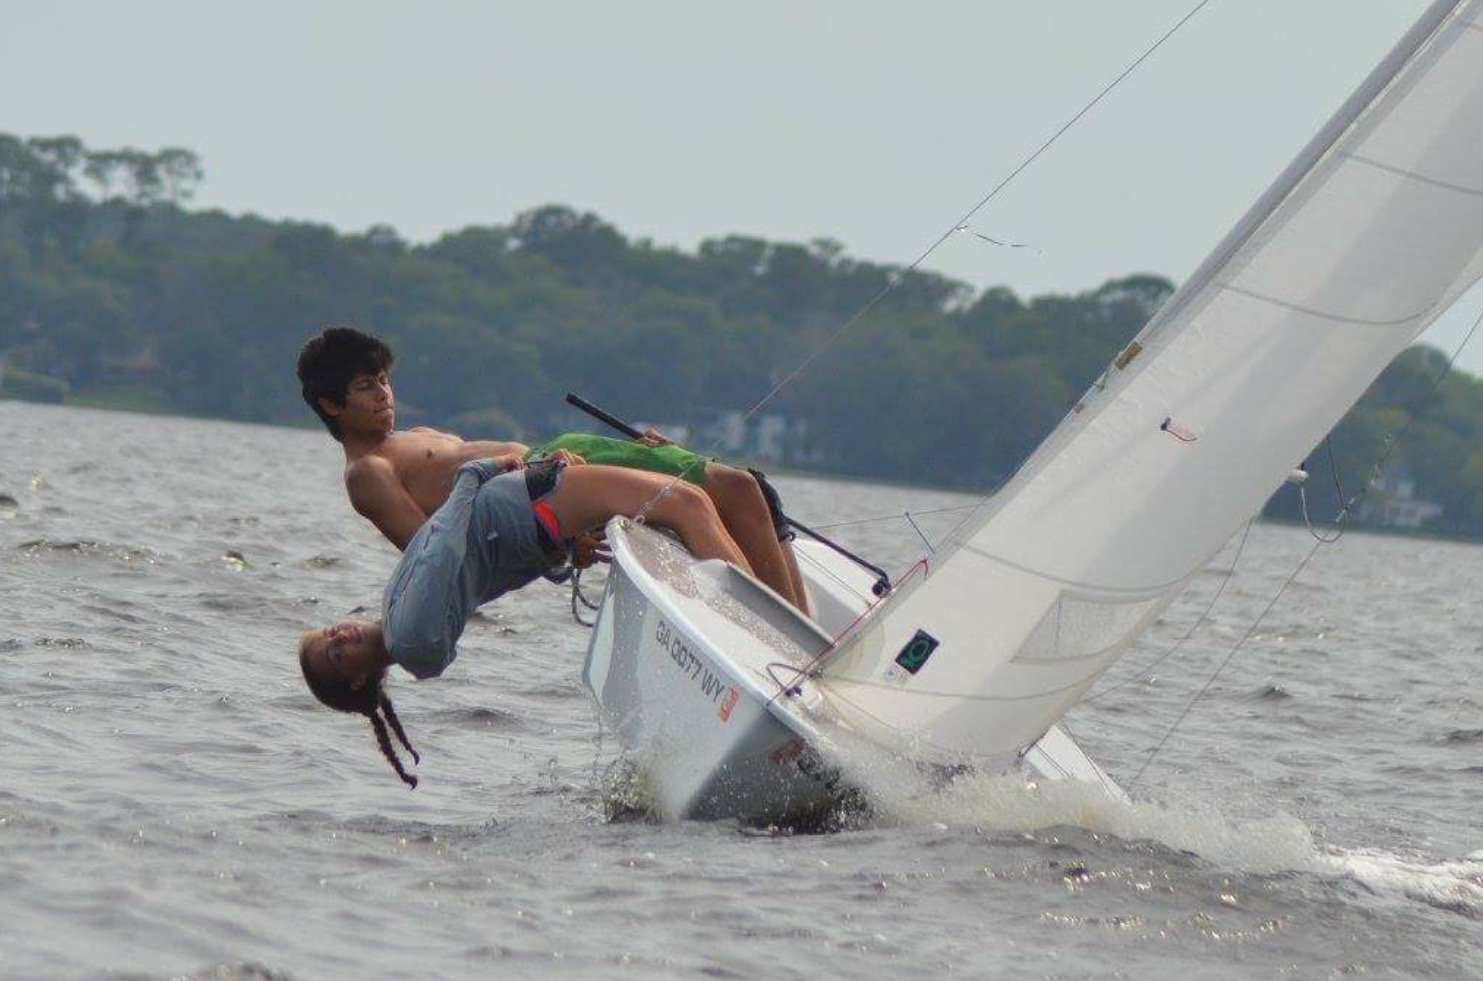 Senior William Kibler and a teammate race in the  Georgia State Championship sailing competition near Statesboro in February.